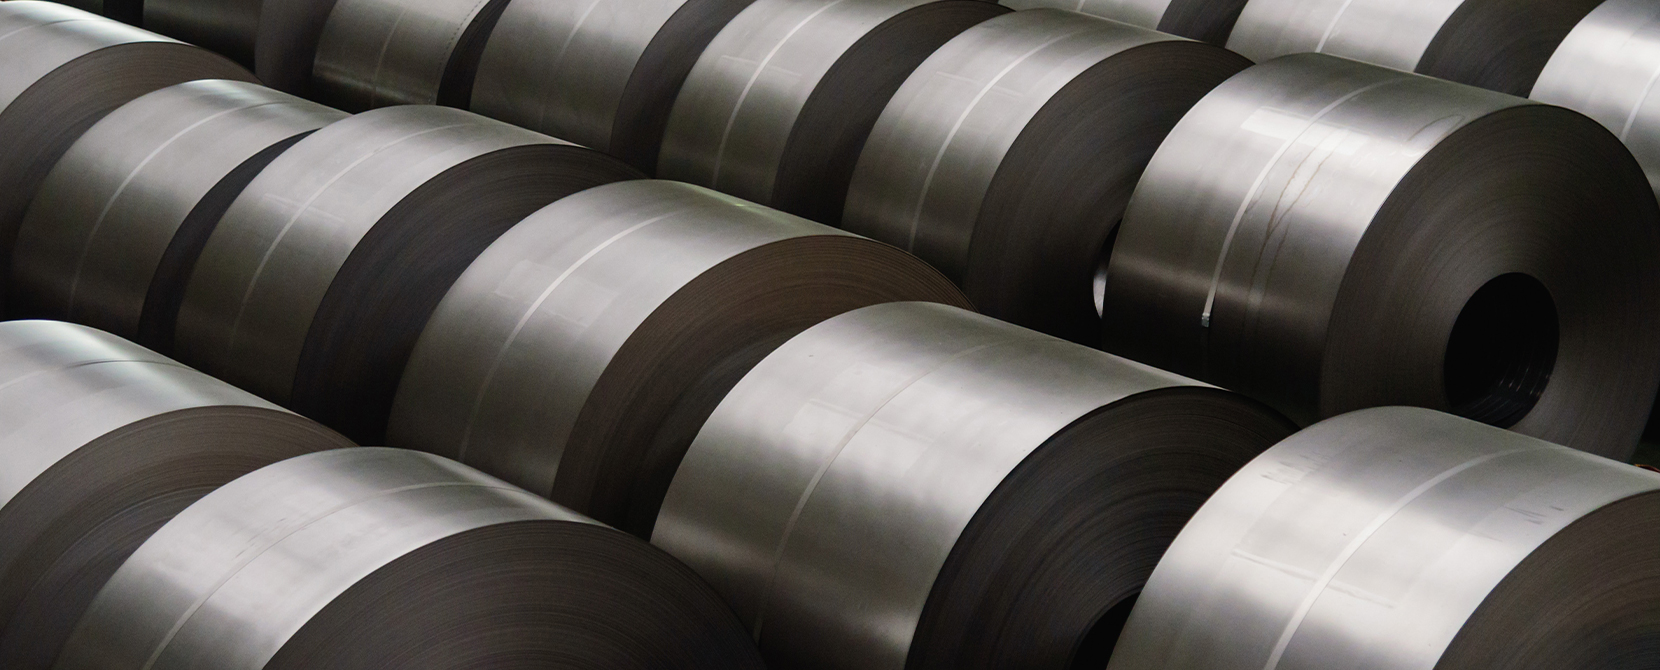 Rust prevention technology for steel coils